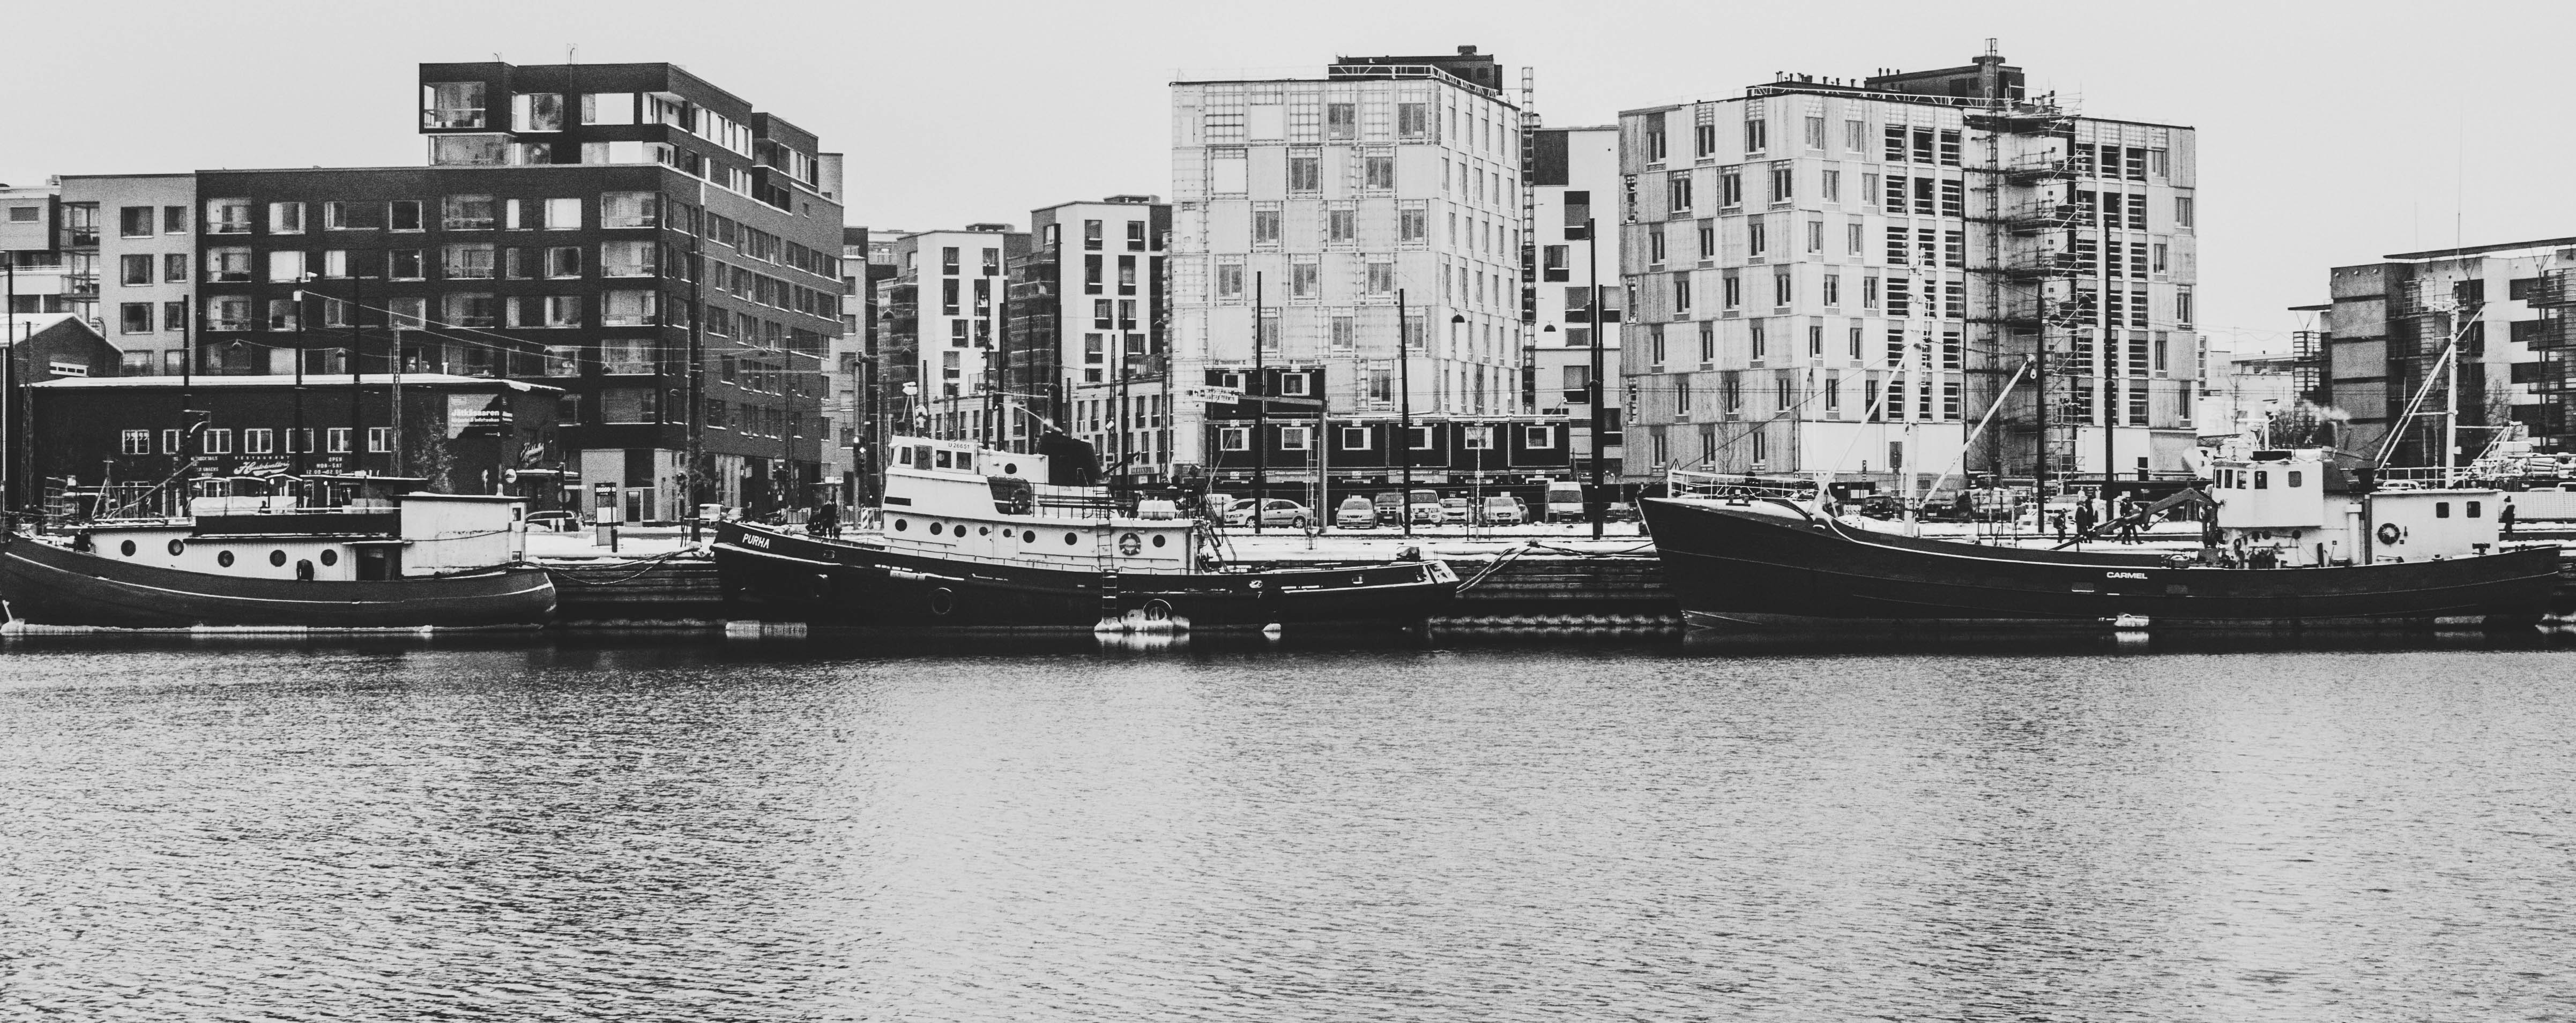 Grayscale Photography Of Buildings And River, Architecture, River, Watercrafts, Water, HQ Photo